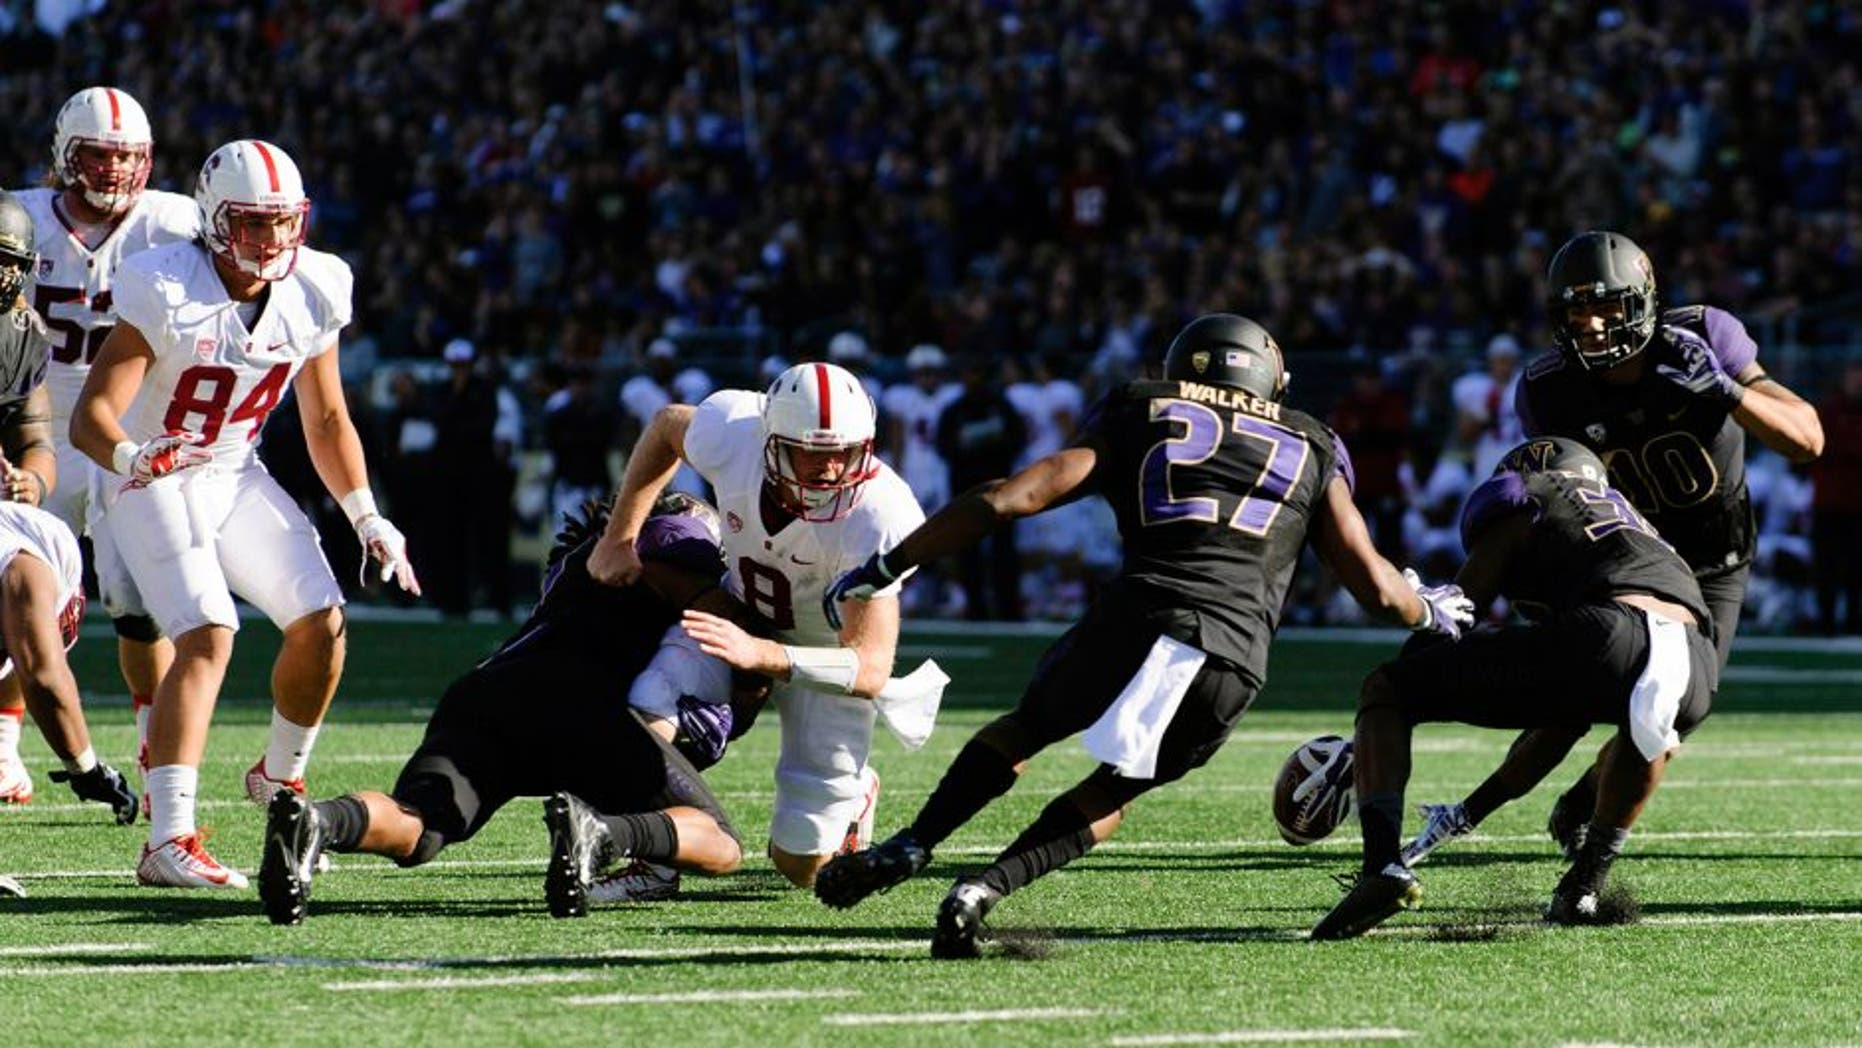 Sep 27, 2014; Seattle, WA, USA; Washington Huskies defensive back Budda Baker (32) reaches for the fumbled ball by Stanford Cardinal safety Jordan Richards (8) during the second half at Husky Stadium. Stanford defeated Washington 20-13. Mandatory Credit: Steven Bisig-USA TODAY Sports